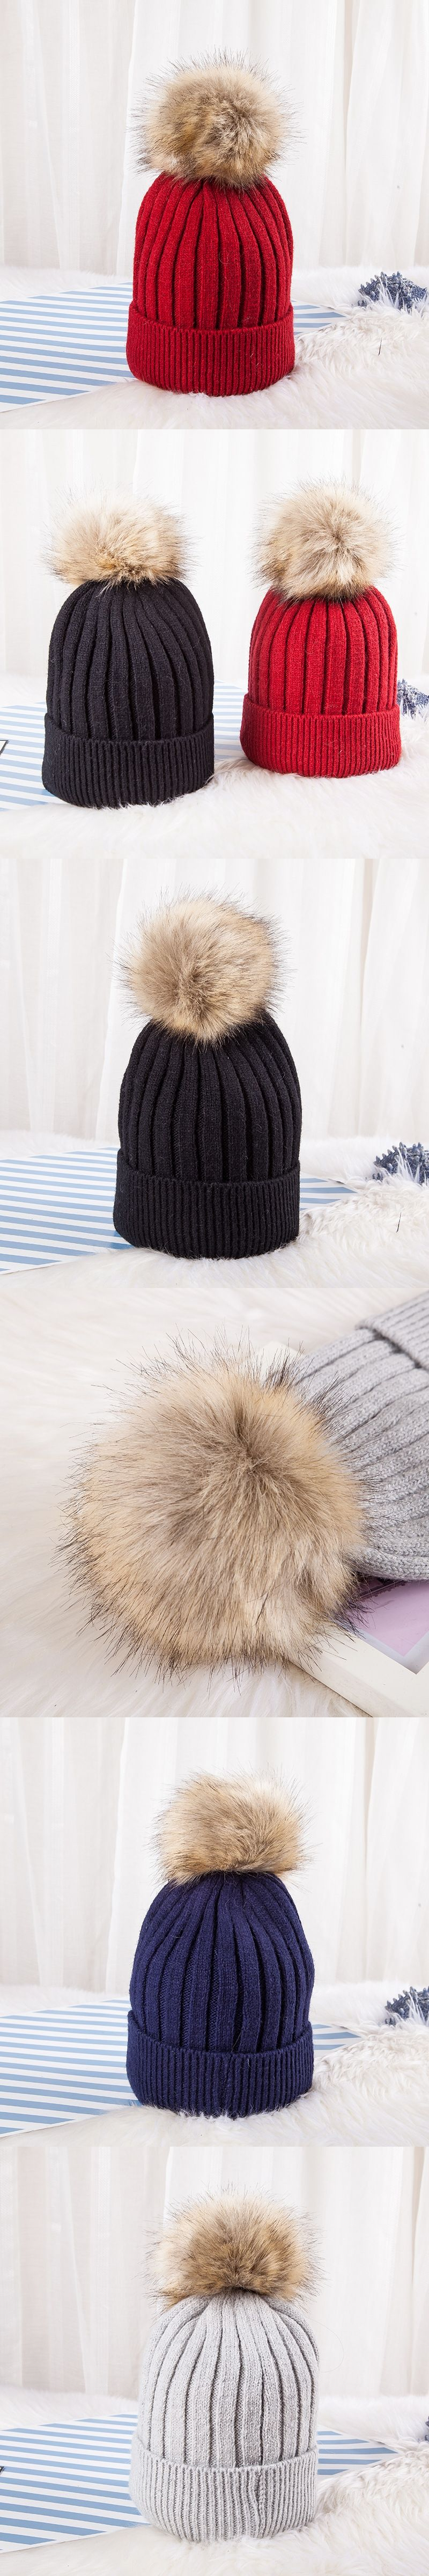 c91c218dc6b Fox Pompoms Hats for Women Solid Color Removable fur pompon ball wool  knitted skullies beanies Warm